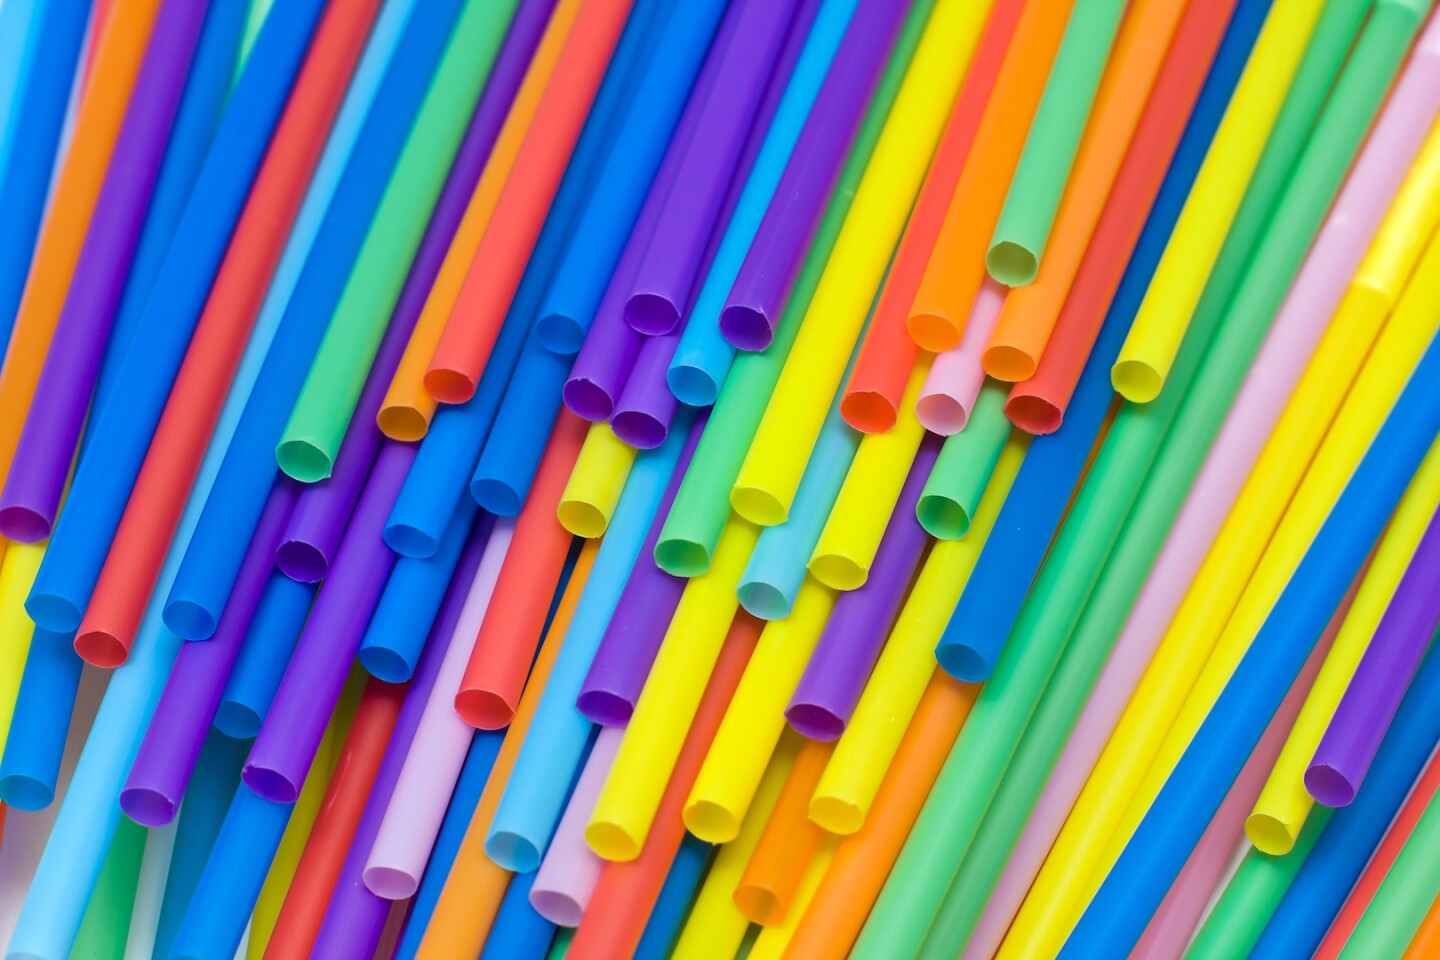 Multi-colored plastic straws thrown on top of each other